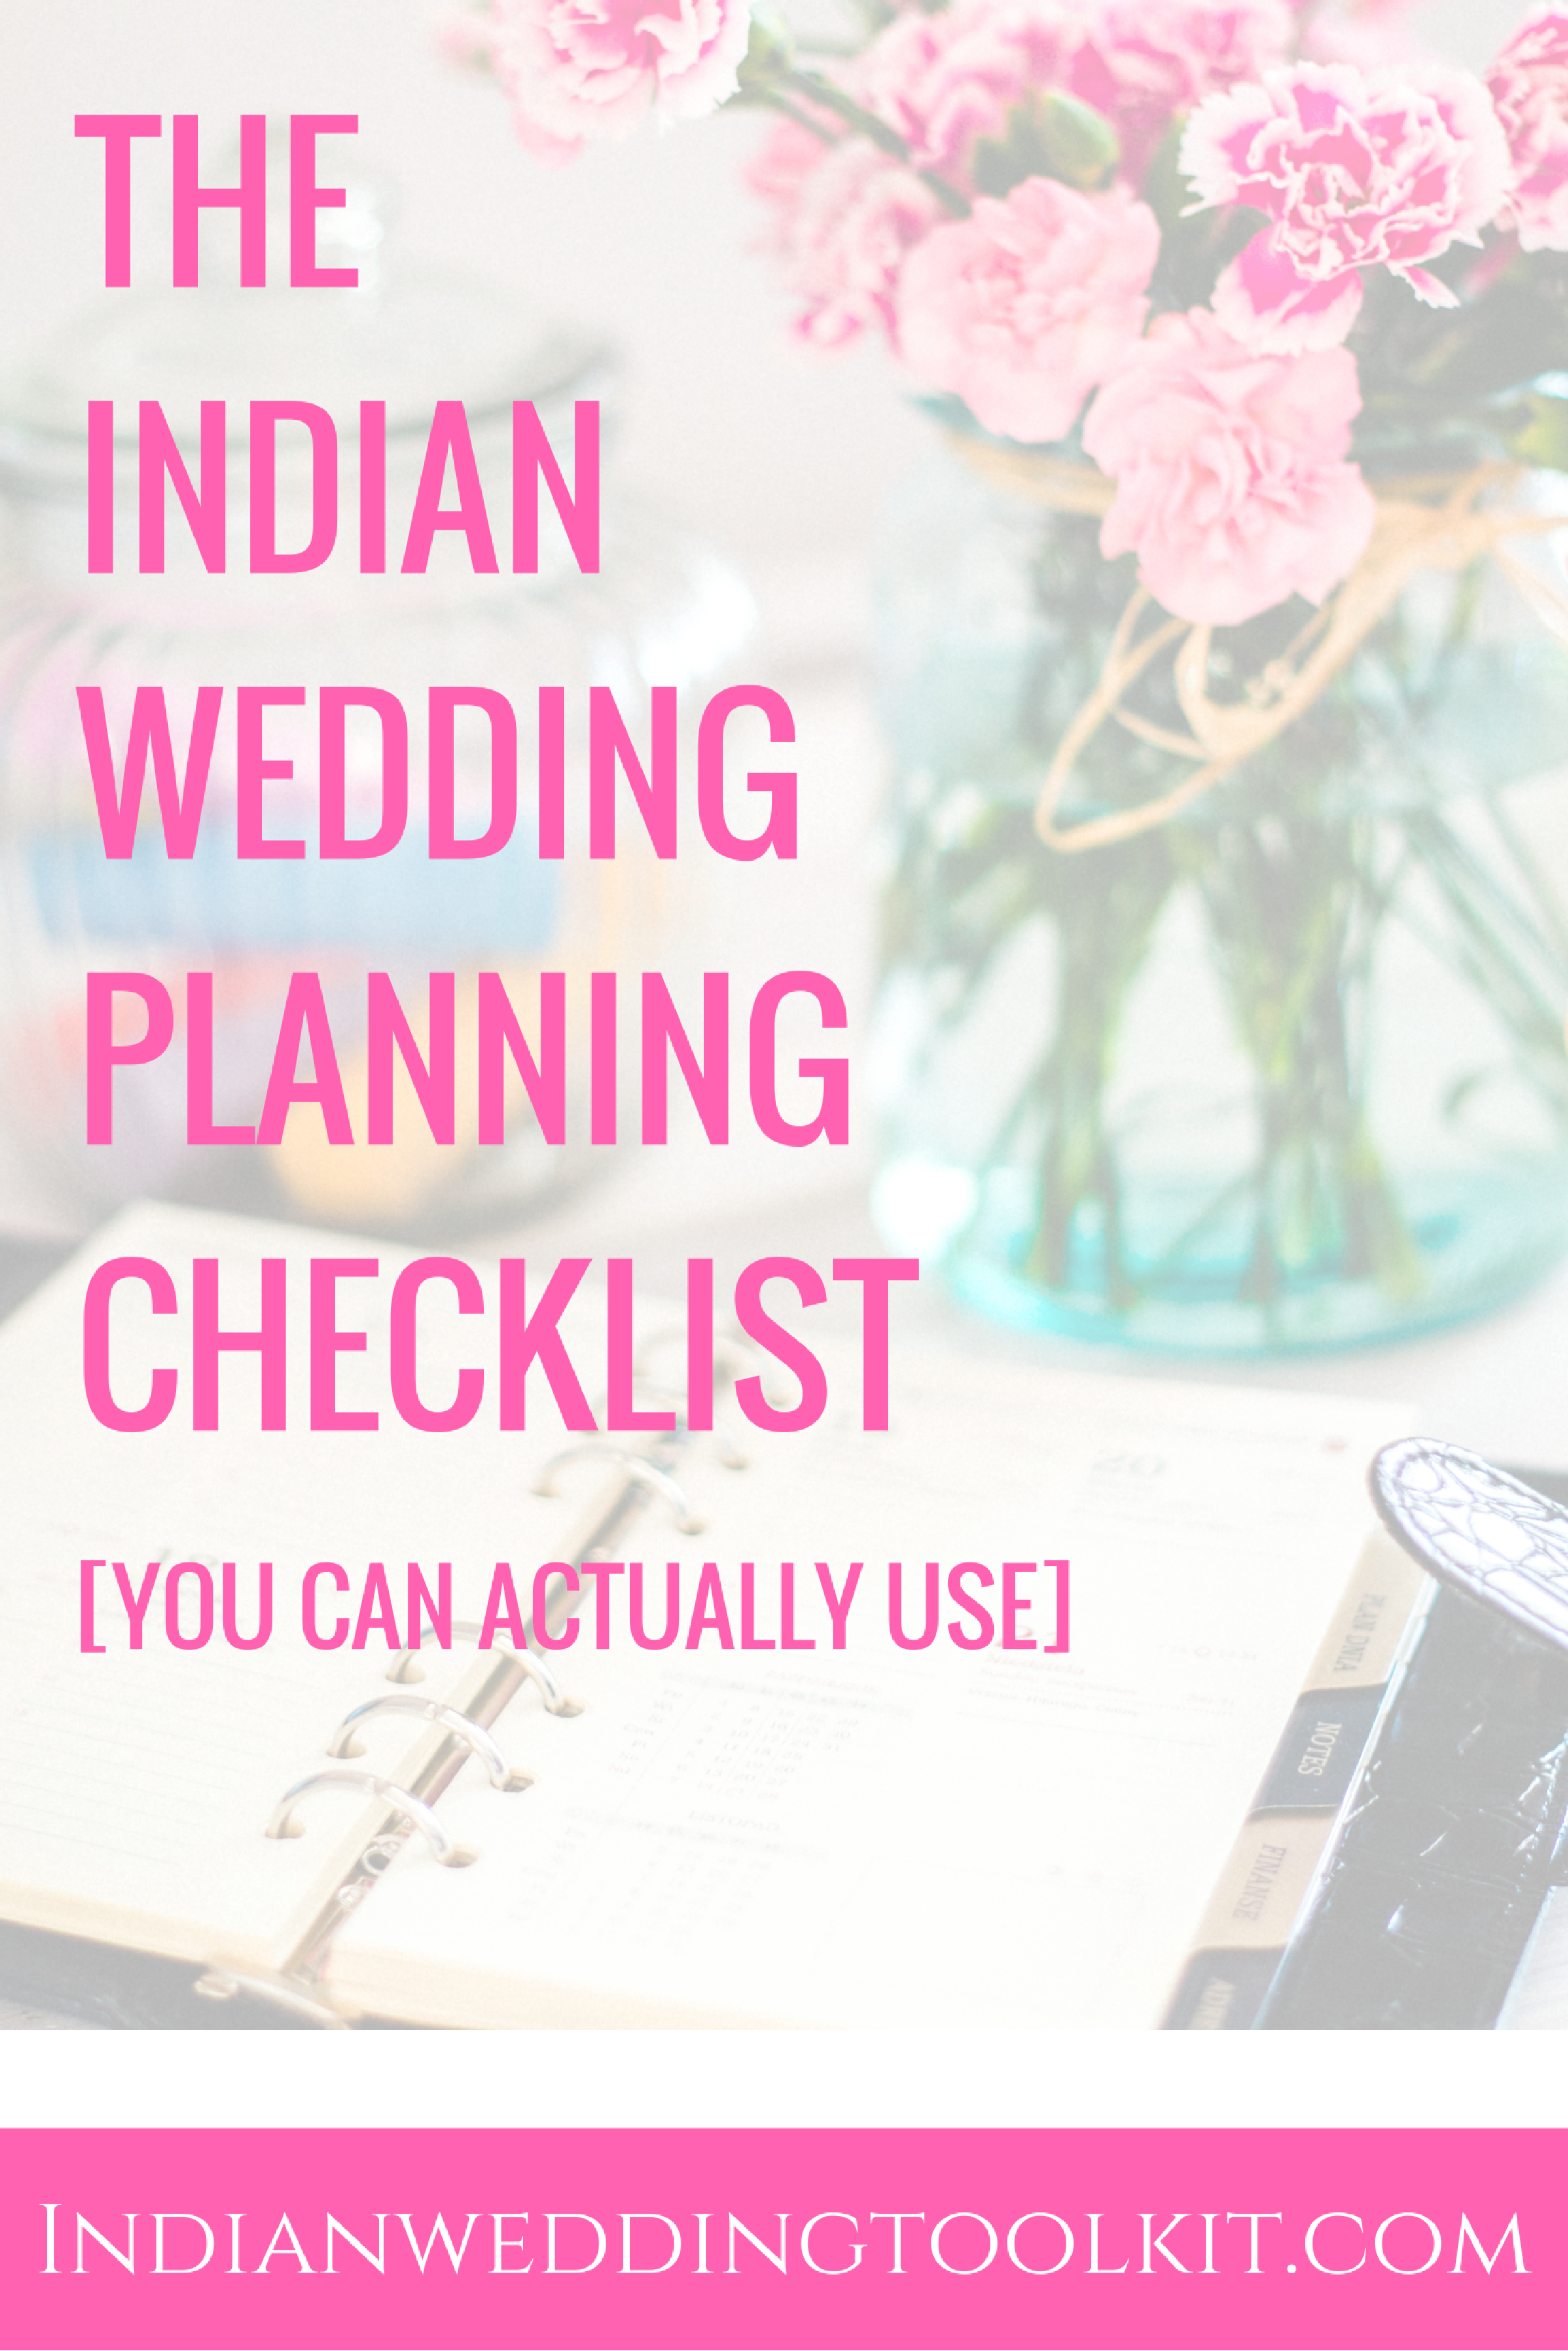 Use This Wedding Planning Checklist For Any Kind Of Indian